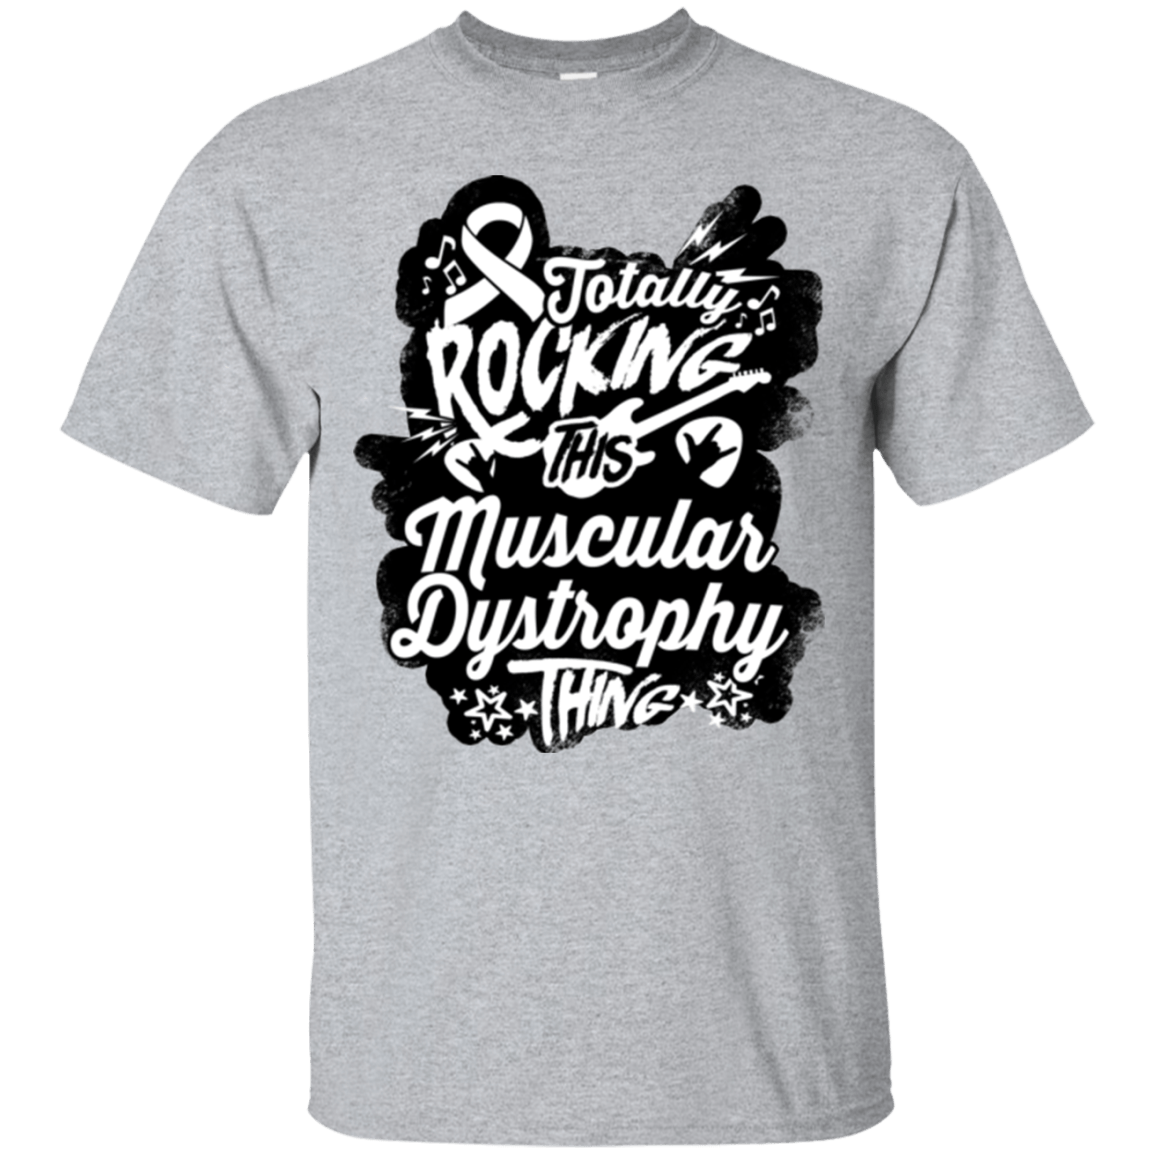 Rocking Muscular Dystrophy Unisex Shirt - The Unchargeables